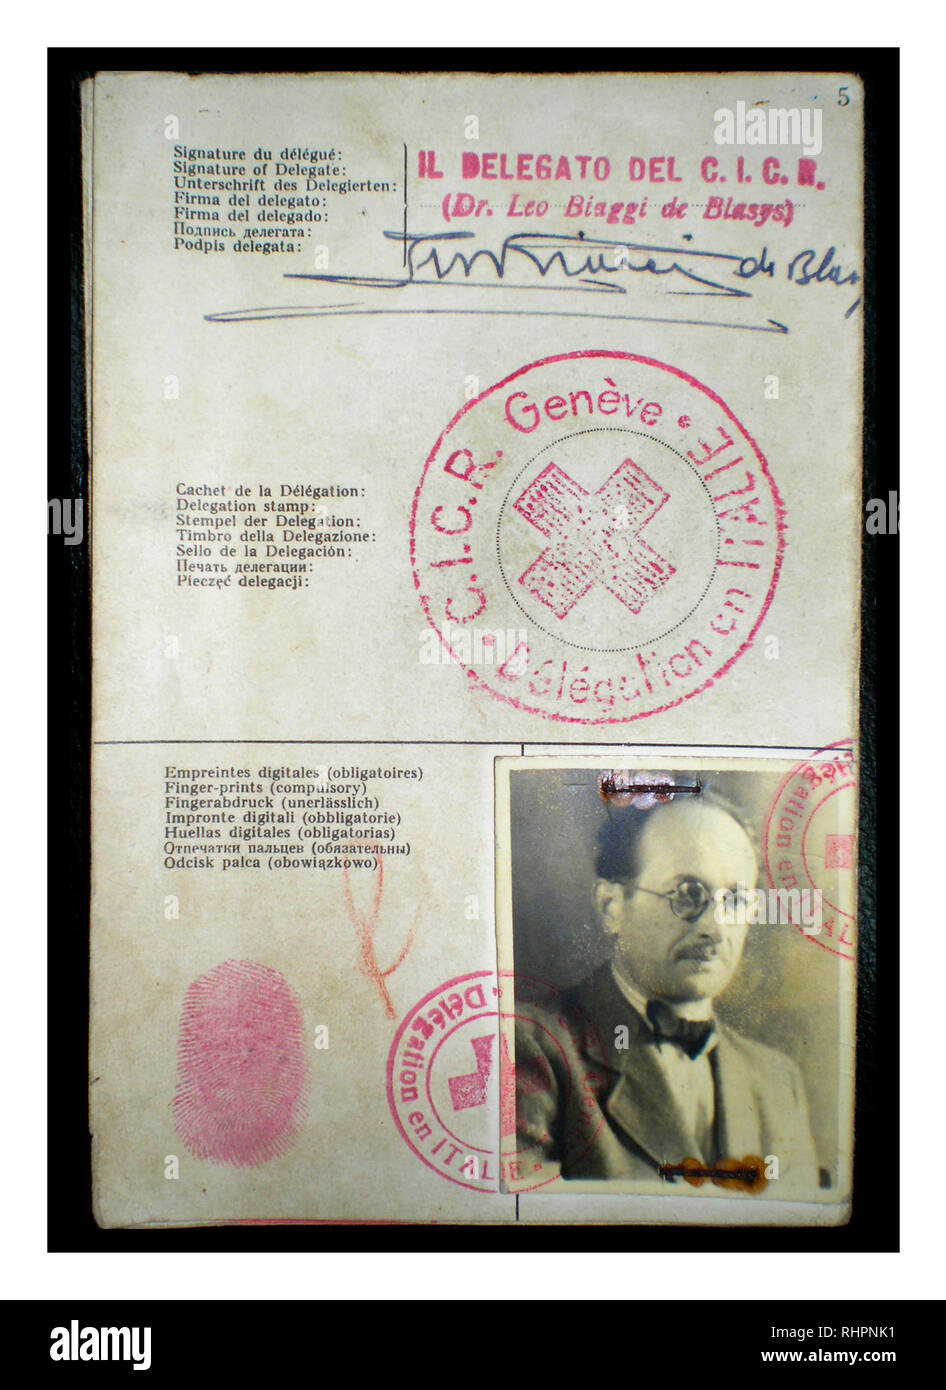 The Red Cross identitity document Adolf Eichmann used to enter Argentina under the alias Ricardo Klement in 1950, issued by the Italian delegation of the Red Cross in Genoa, Italy. - Stock Image